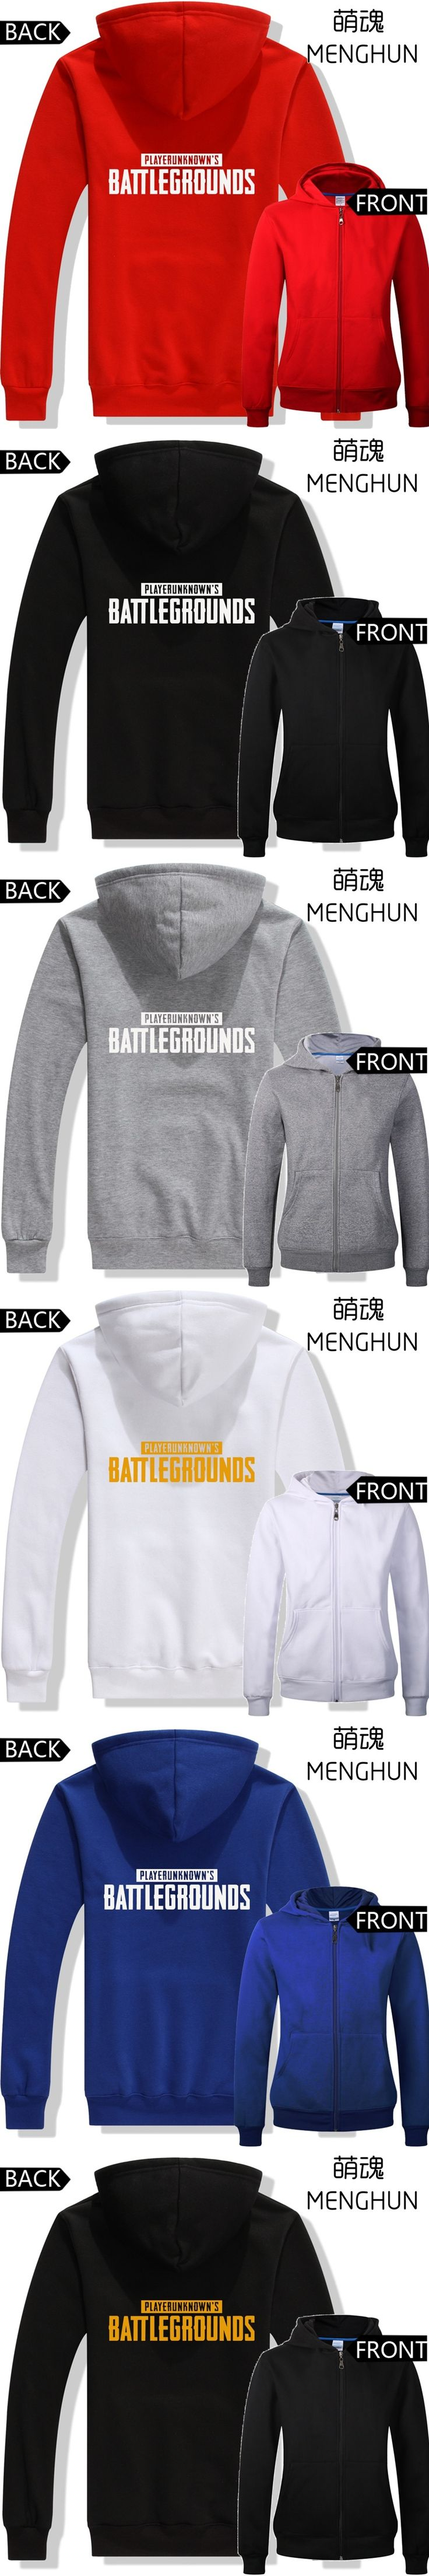 World hot suvival game PLAYER UNKNOWN'S BATTLEGROUNDS hoodies battle grounds hoodies men's hoodie game costumes ac660